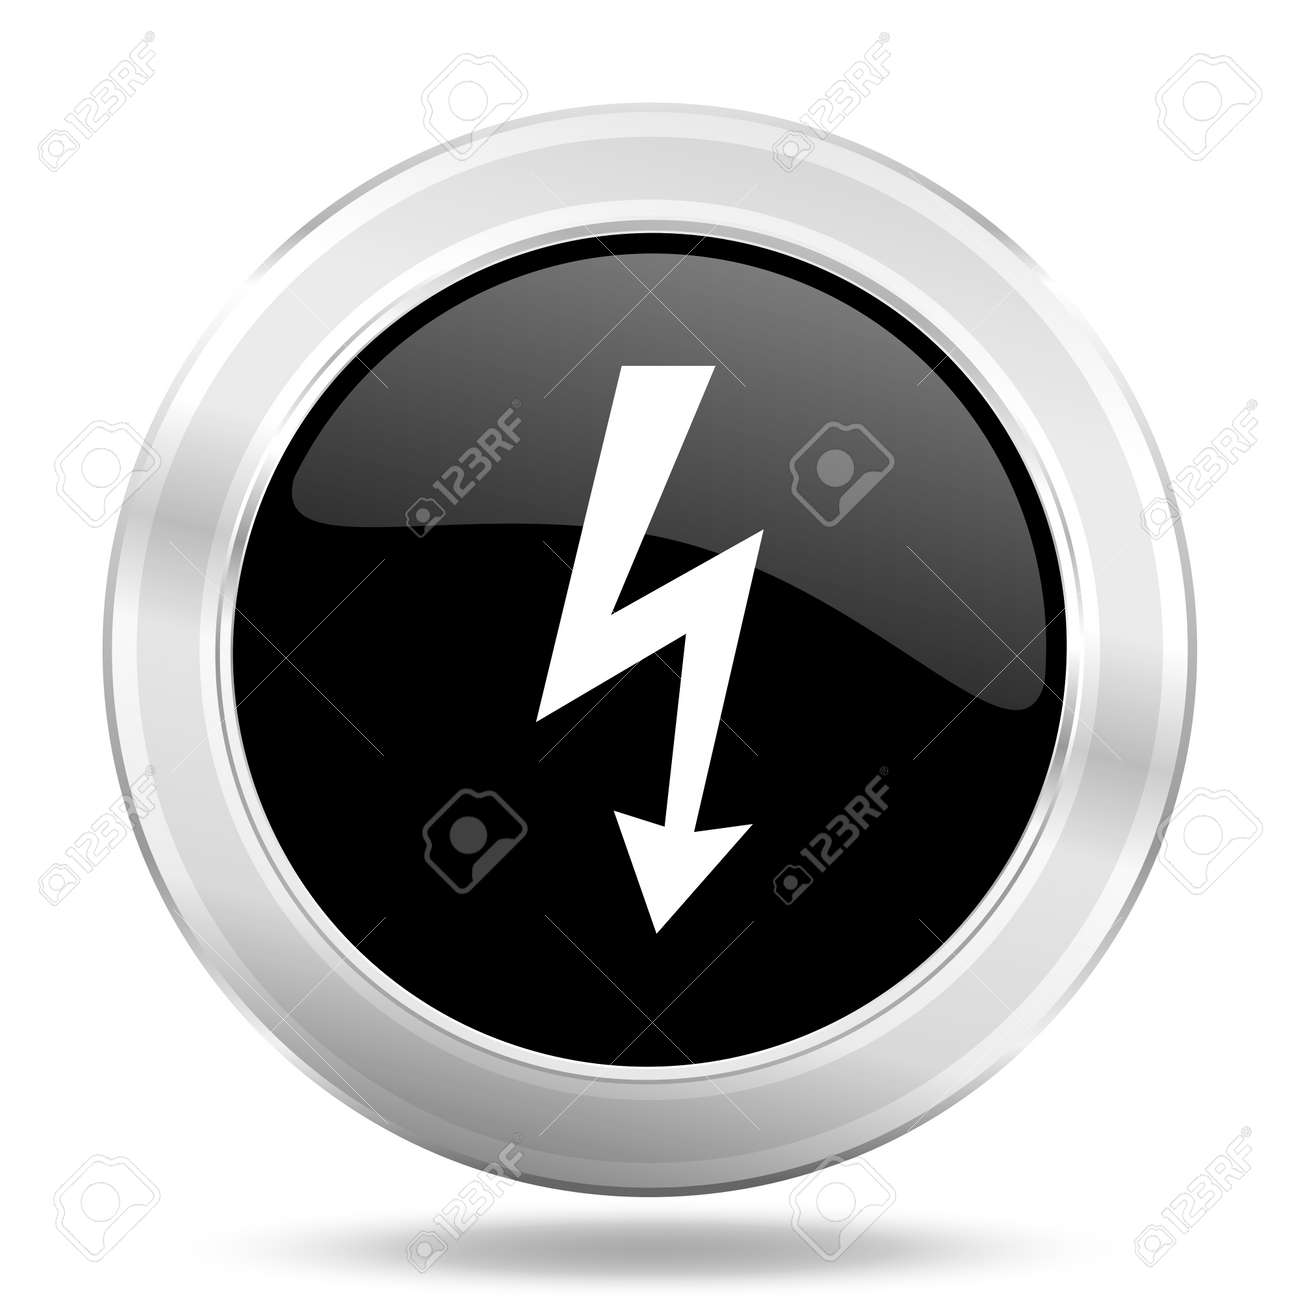 Bolt Black Icon Metallic Design Internet Button Web And Mobile Stock Photo Picture And Royalty Free Image Image 58725658